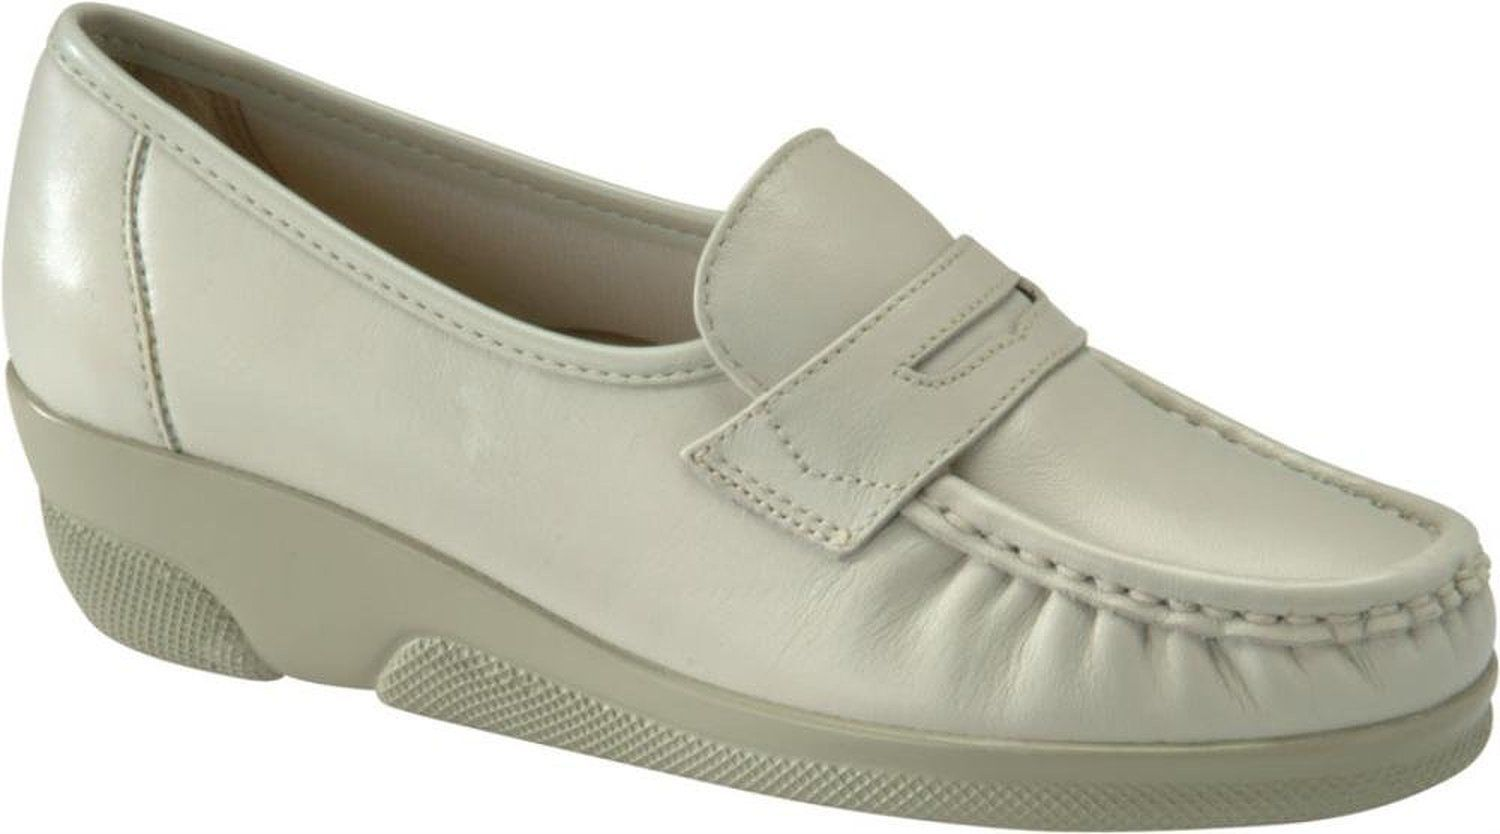 Softspots PENNIE 103803 Womens Bone Slip On Loafers Shoes